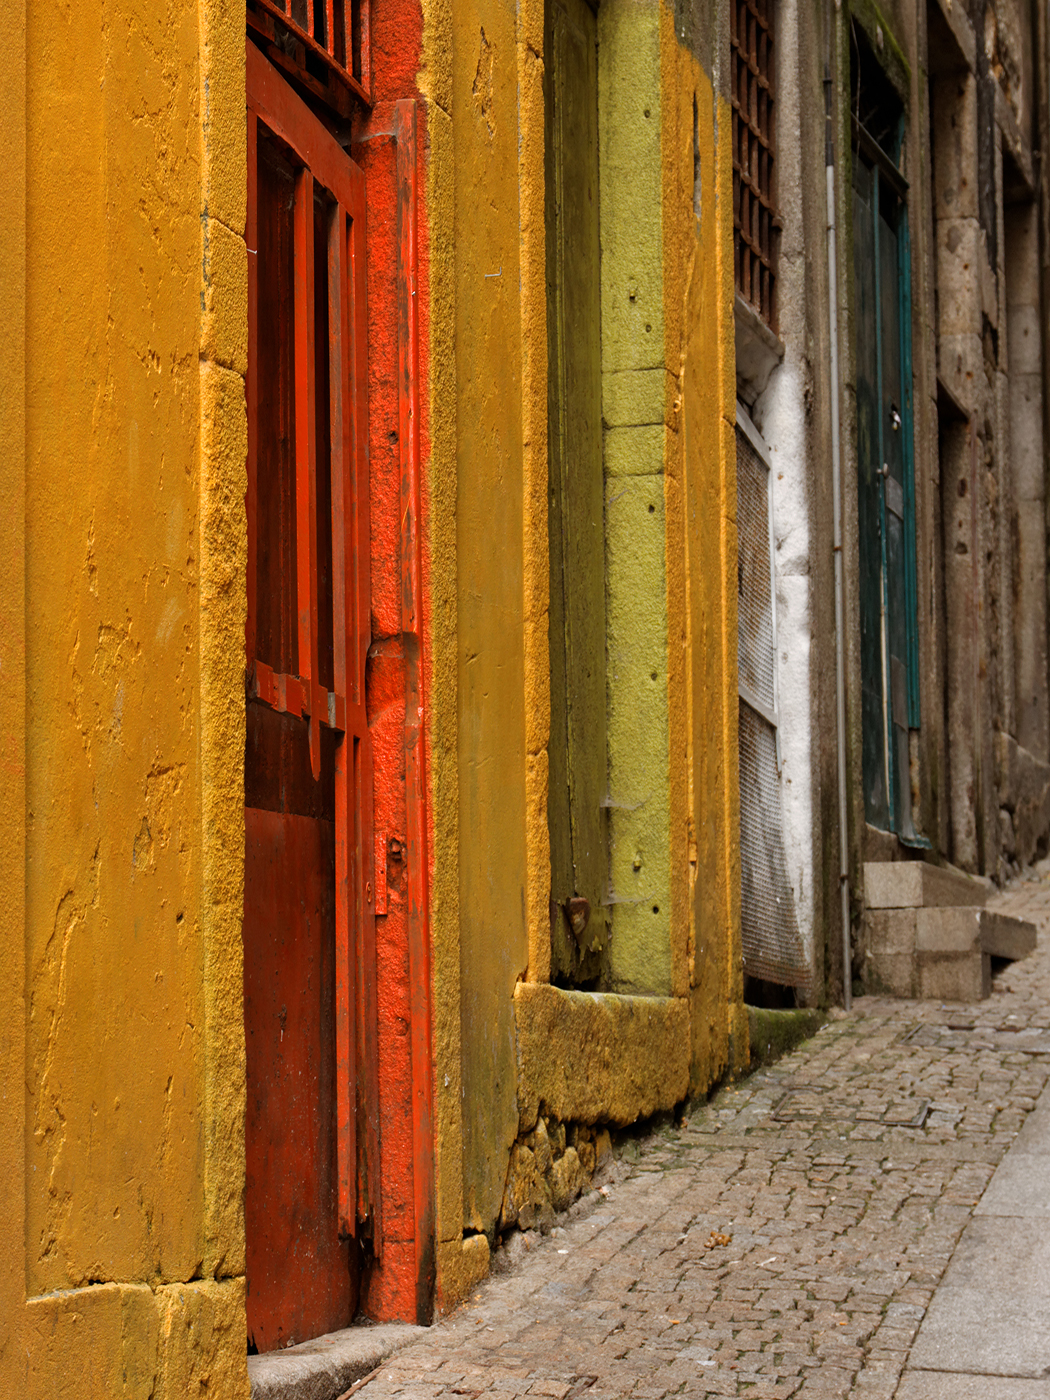 PORTO DOORS by Ray Mengham